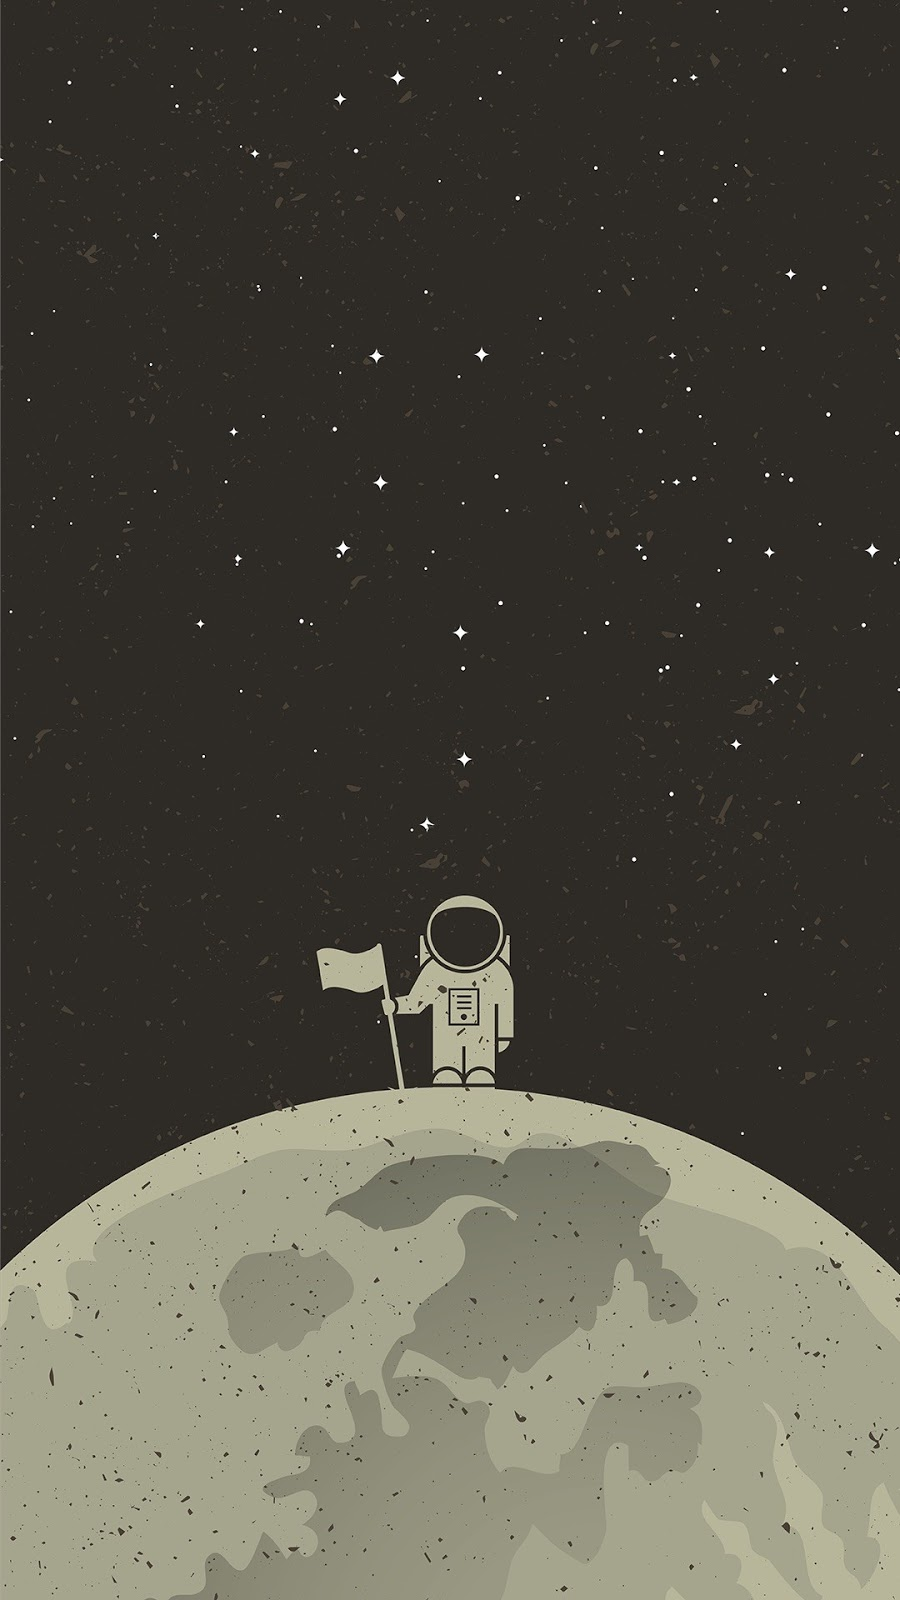 Astronaut in the moon